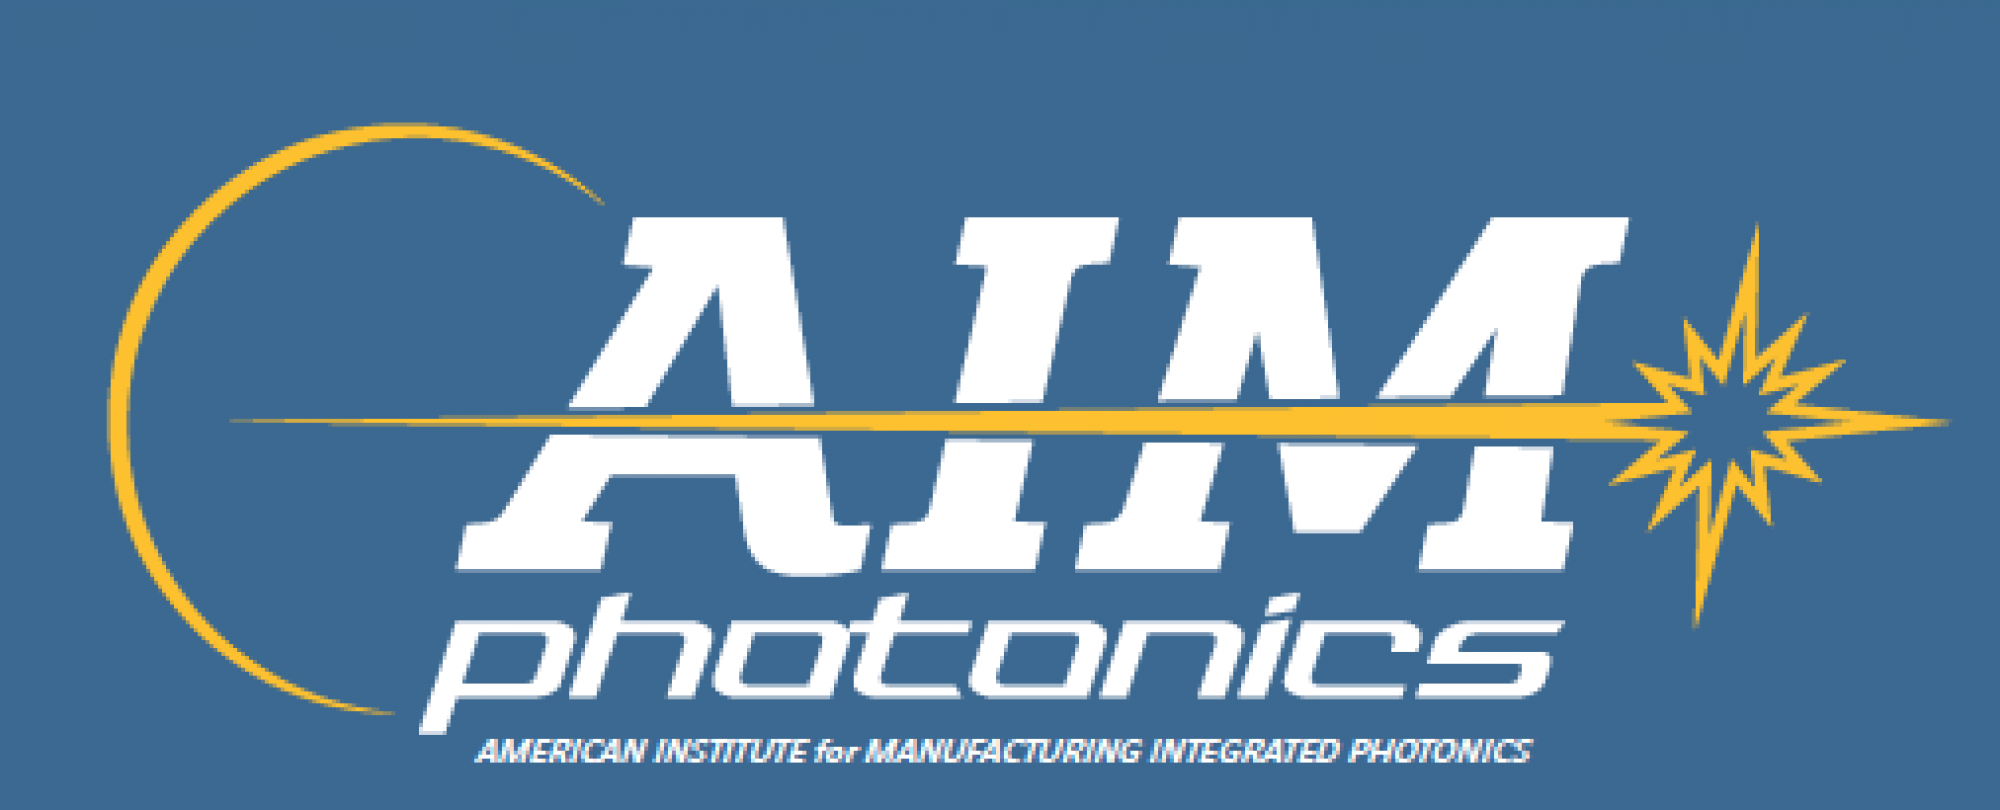 The American Institute for Manufacturing Integrated Photonics team was formed in response to President Barack Obama's fall 2014 announcement of Integrated Photonics.